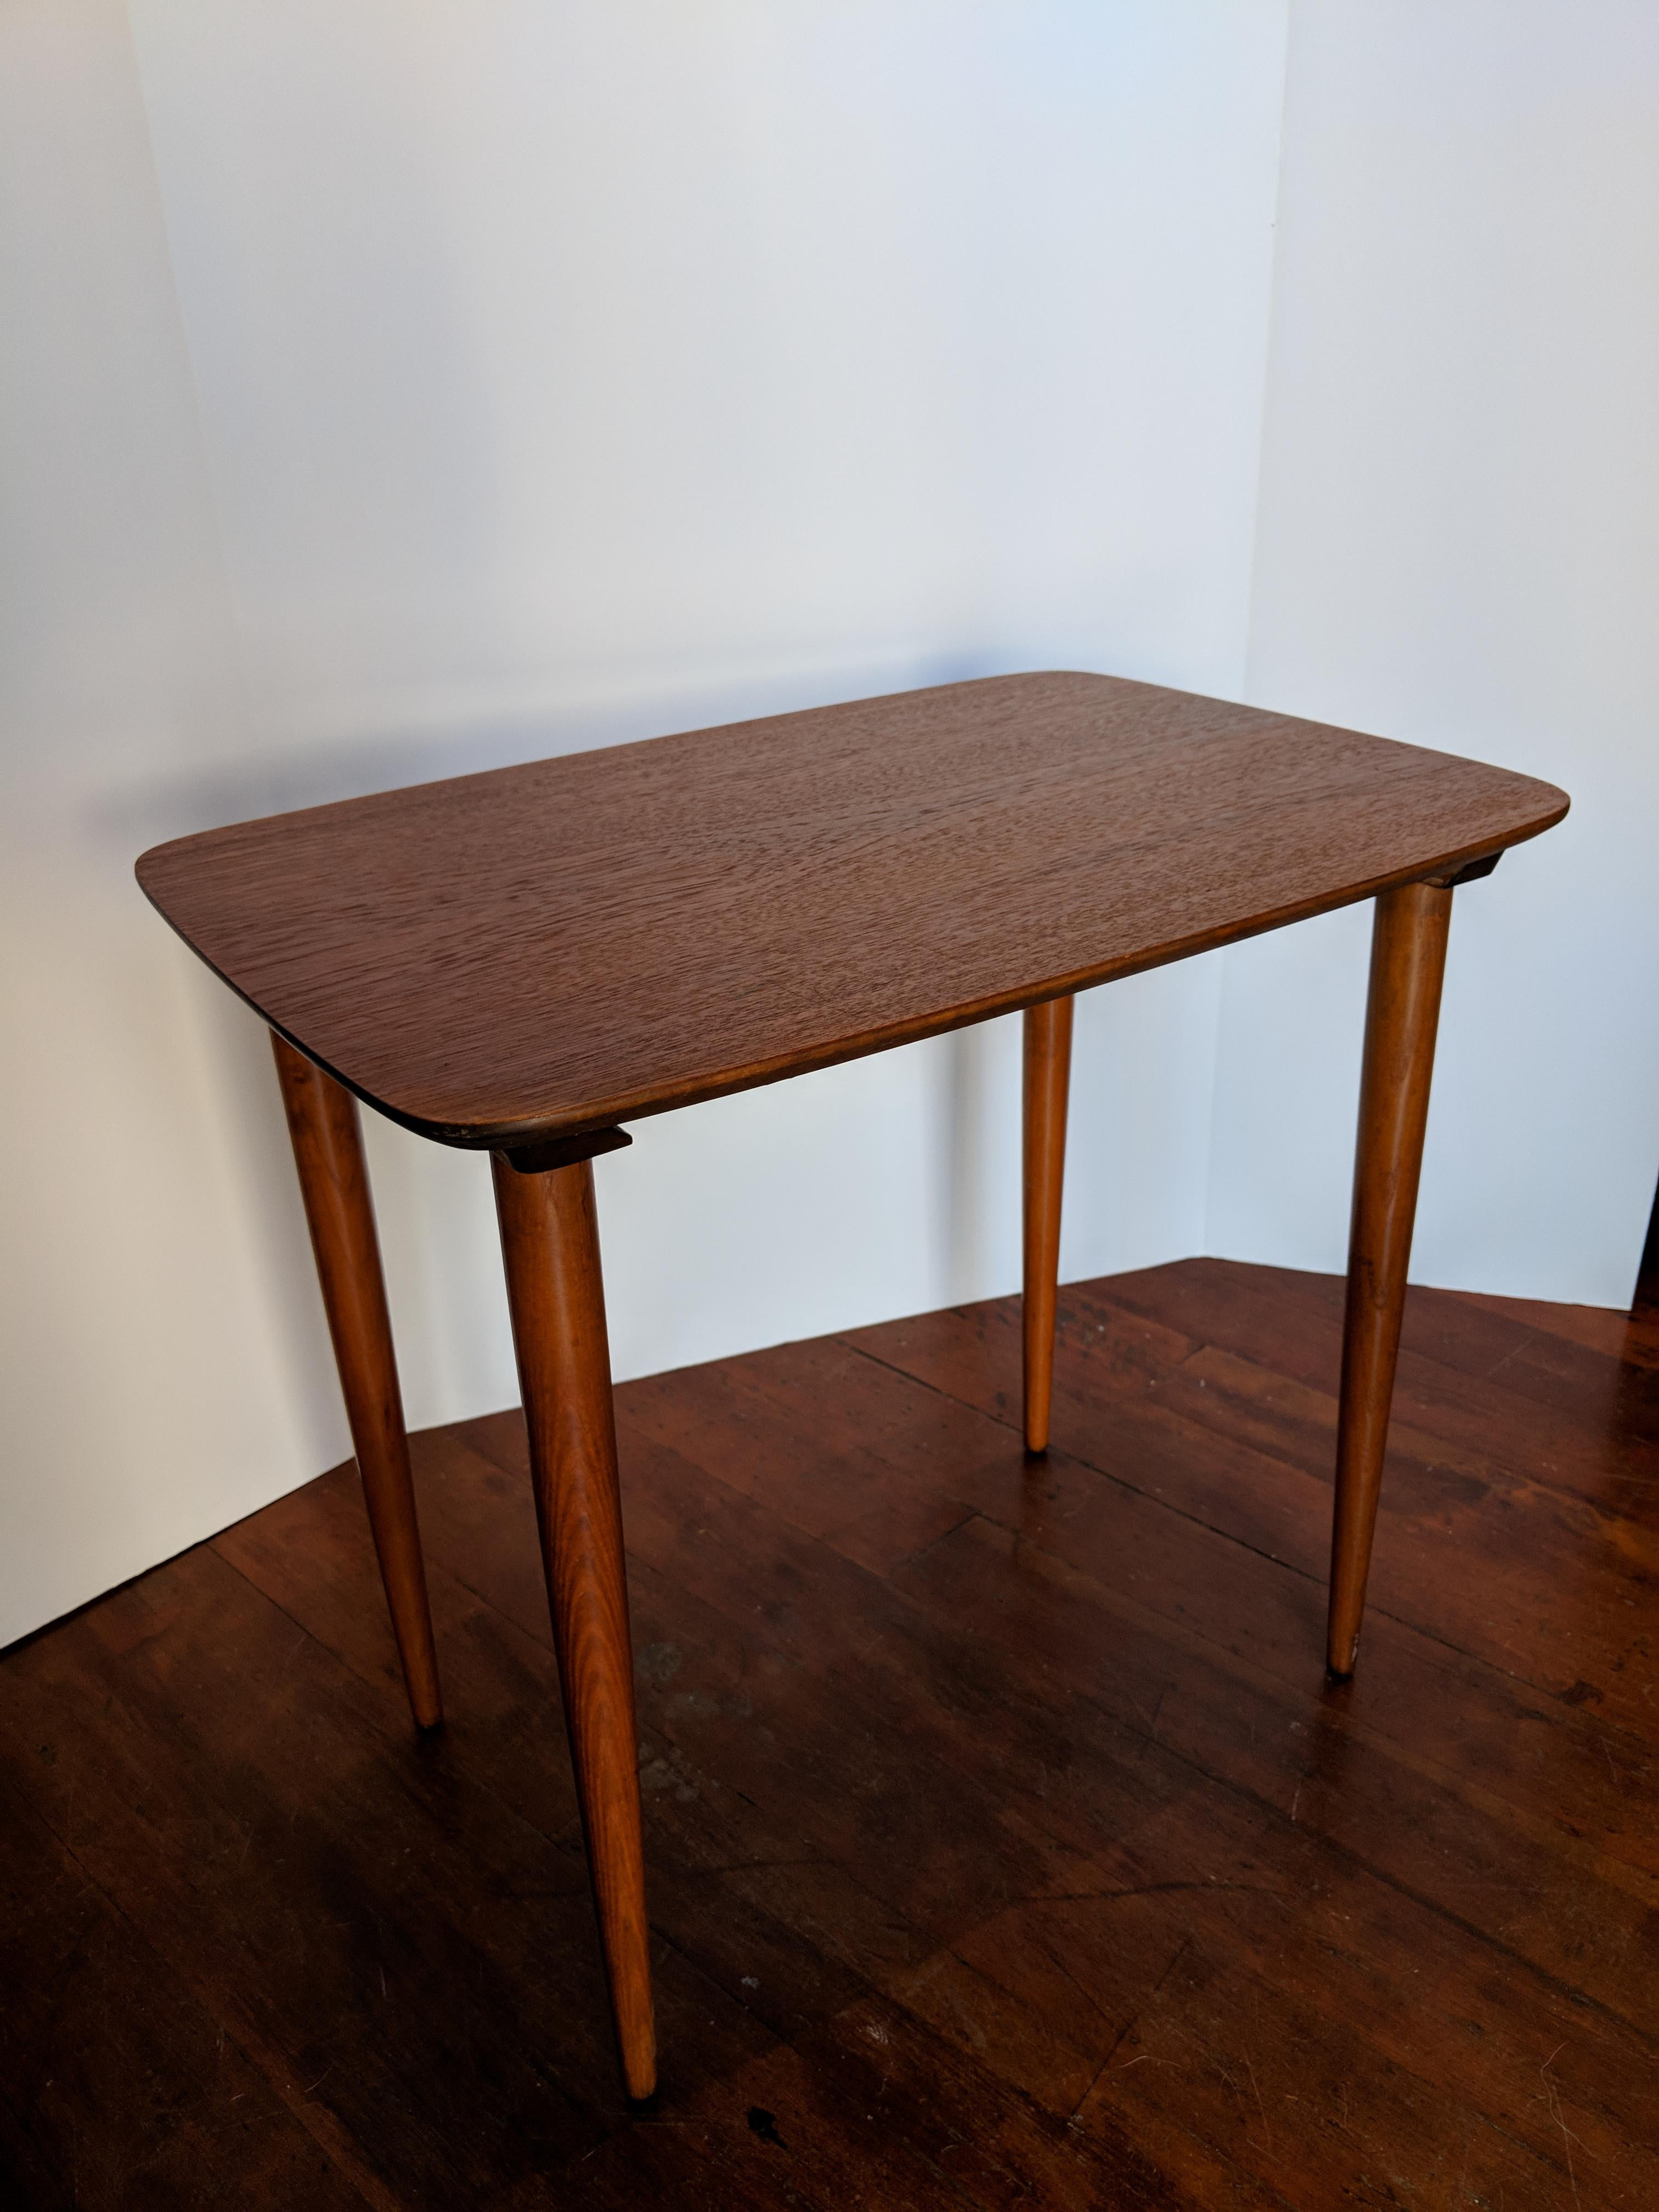 Vintage Mid Century Nesting Tables   Set Of 3   Image 4 Of 9